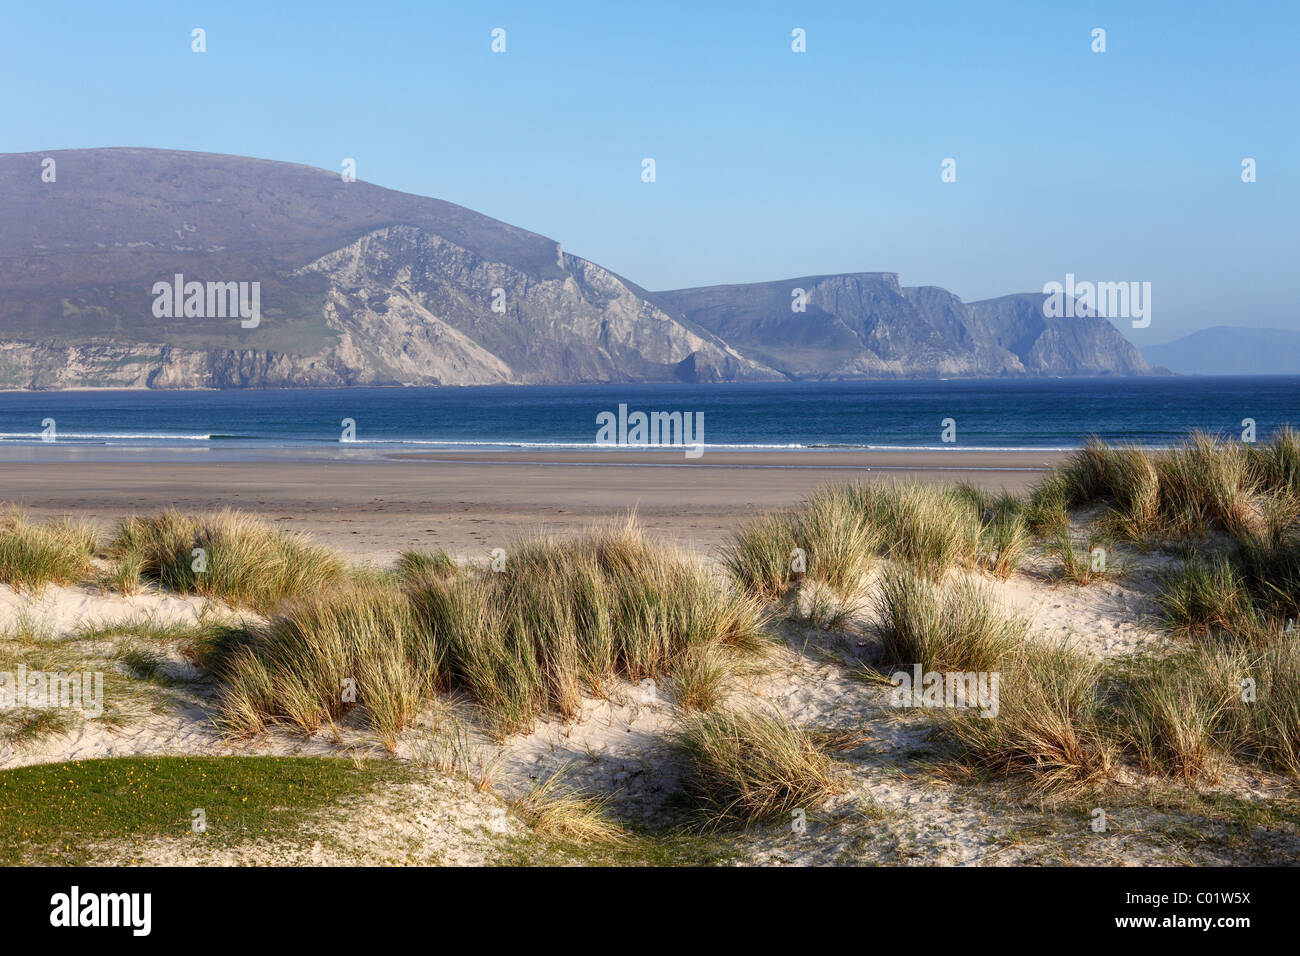 Keel Beach, cliffs and the Dooega Head, Achill Island, County Mayo, Connacht province, Republic of Ireland, Europe - Stock Image